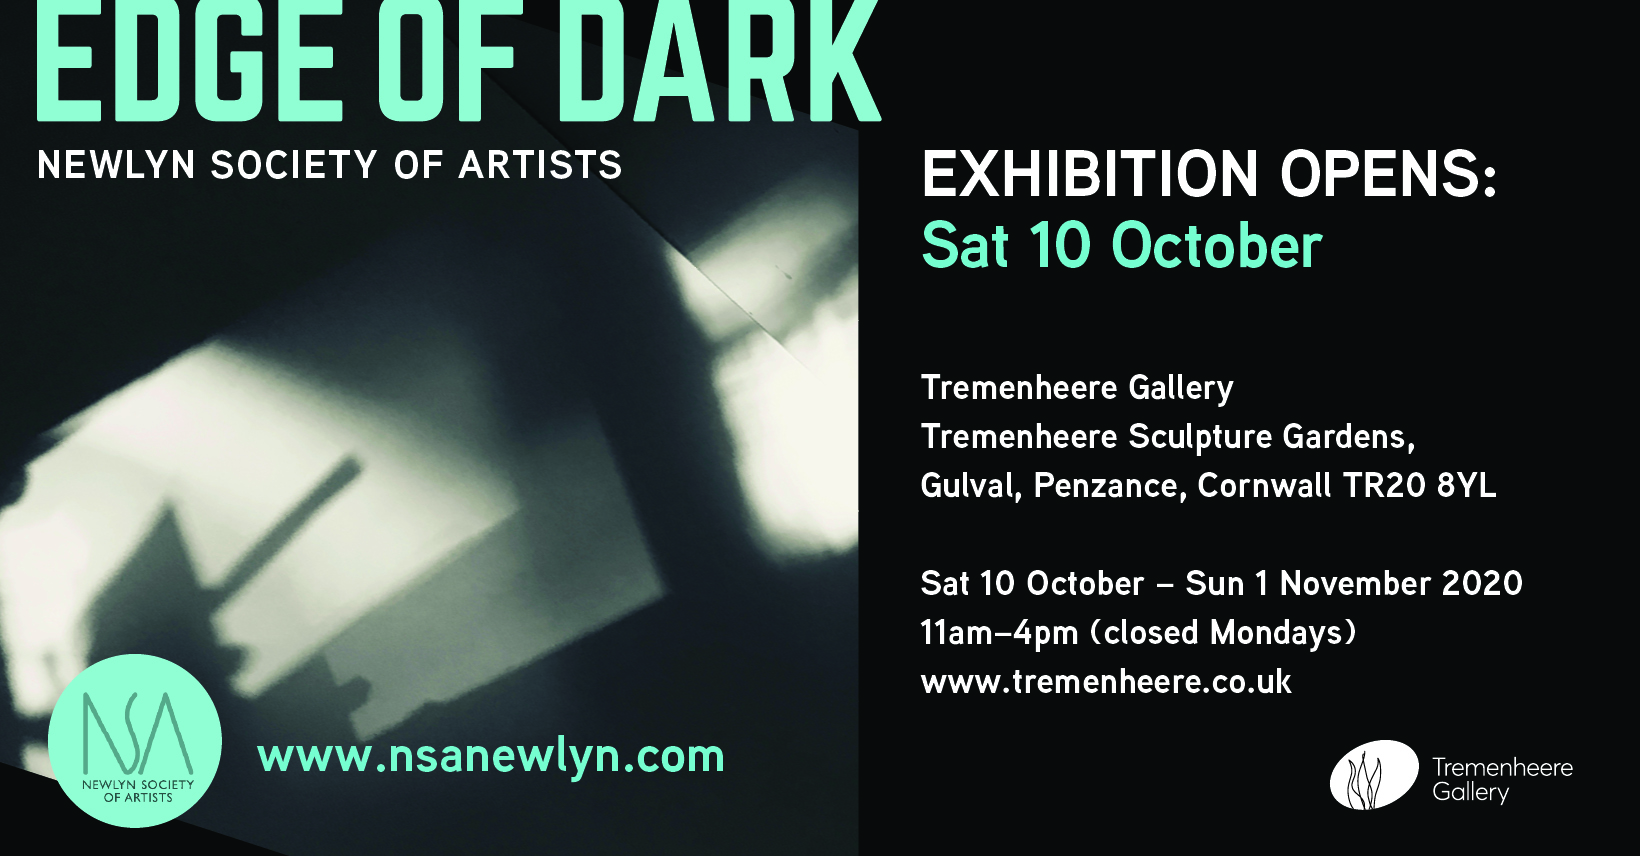 Edge Of Dark Exhibition Details